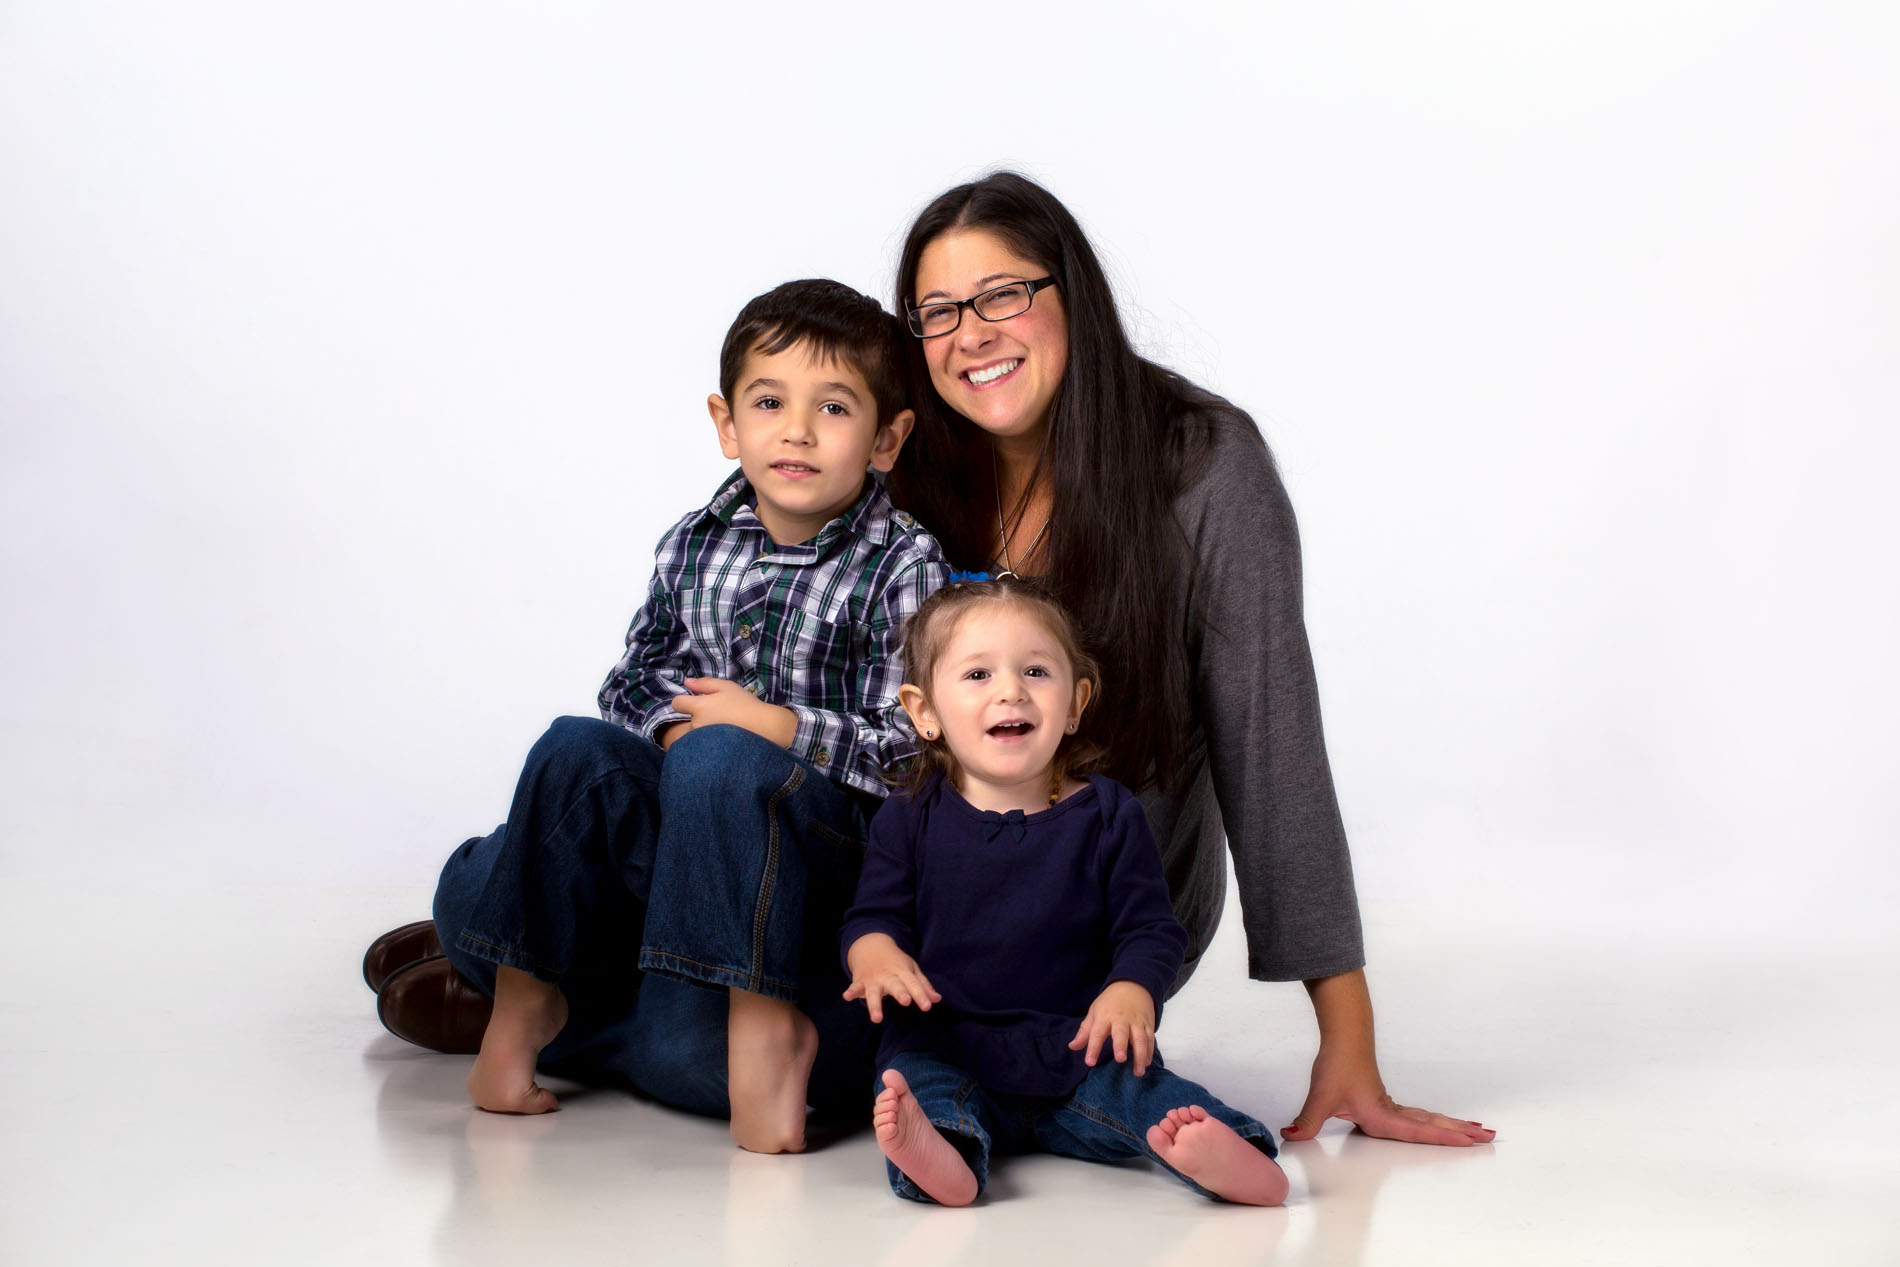 mom and her two kids in modern family portrait